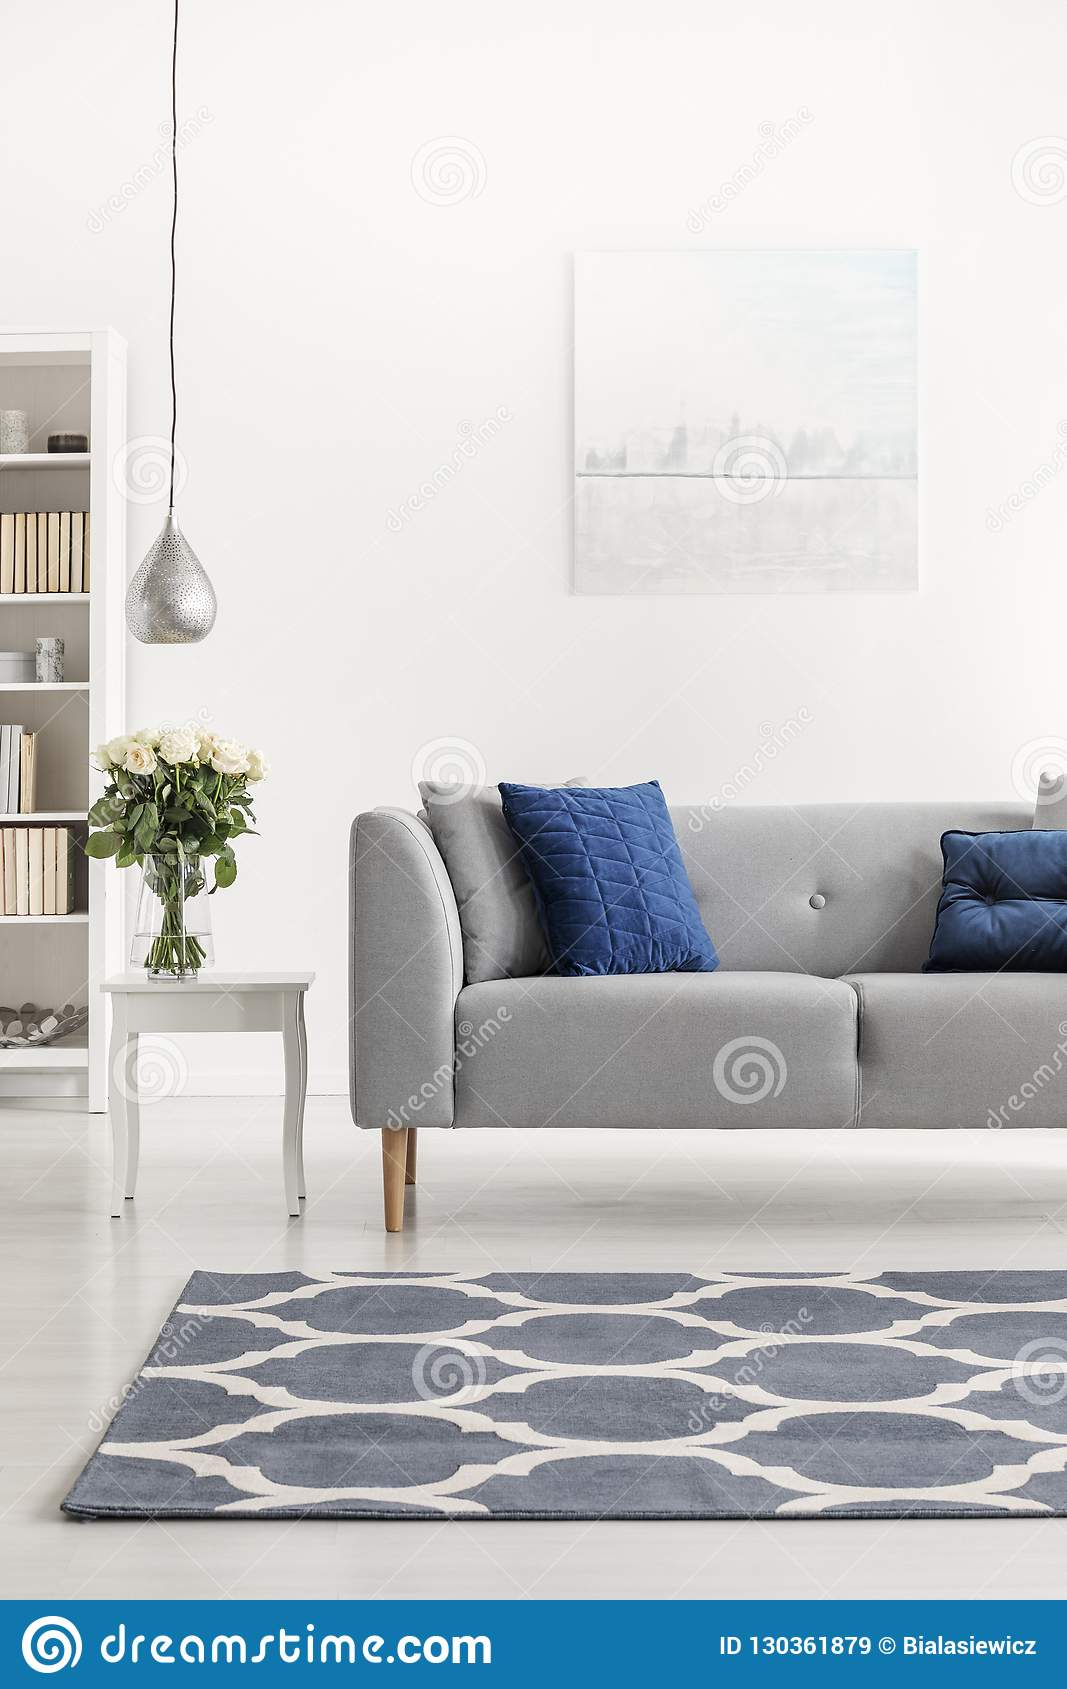 Incredible Patterned Carpet In Front Of Grey Couch With Blue Pillows In Machost Co Dining Chair Design Ideas Machostcouk